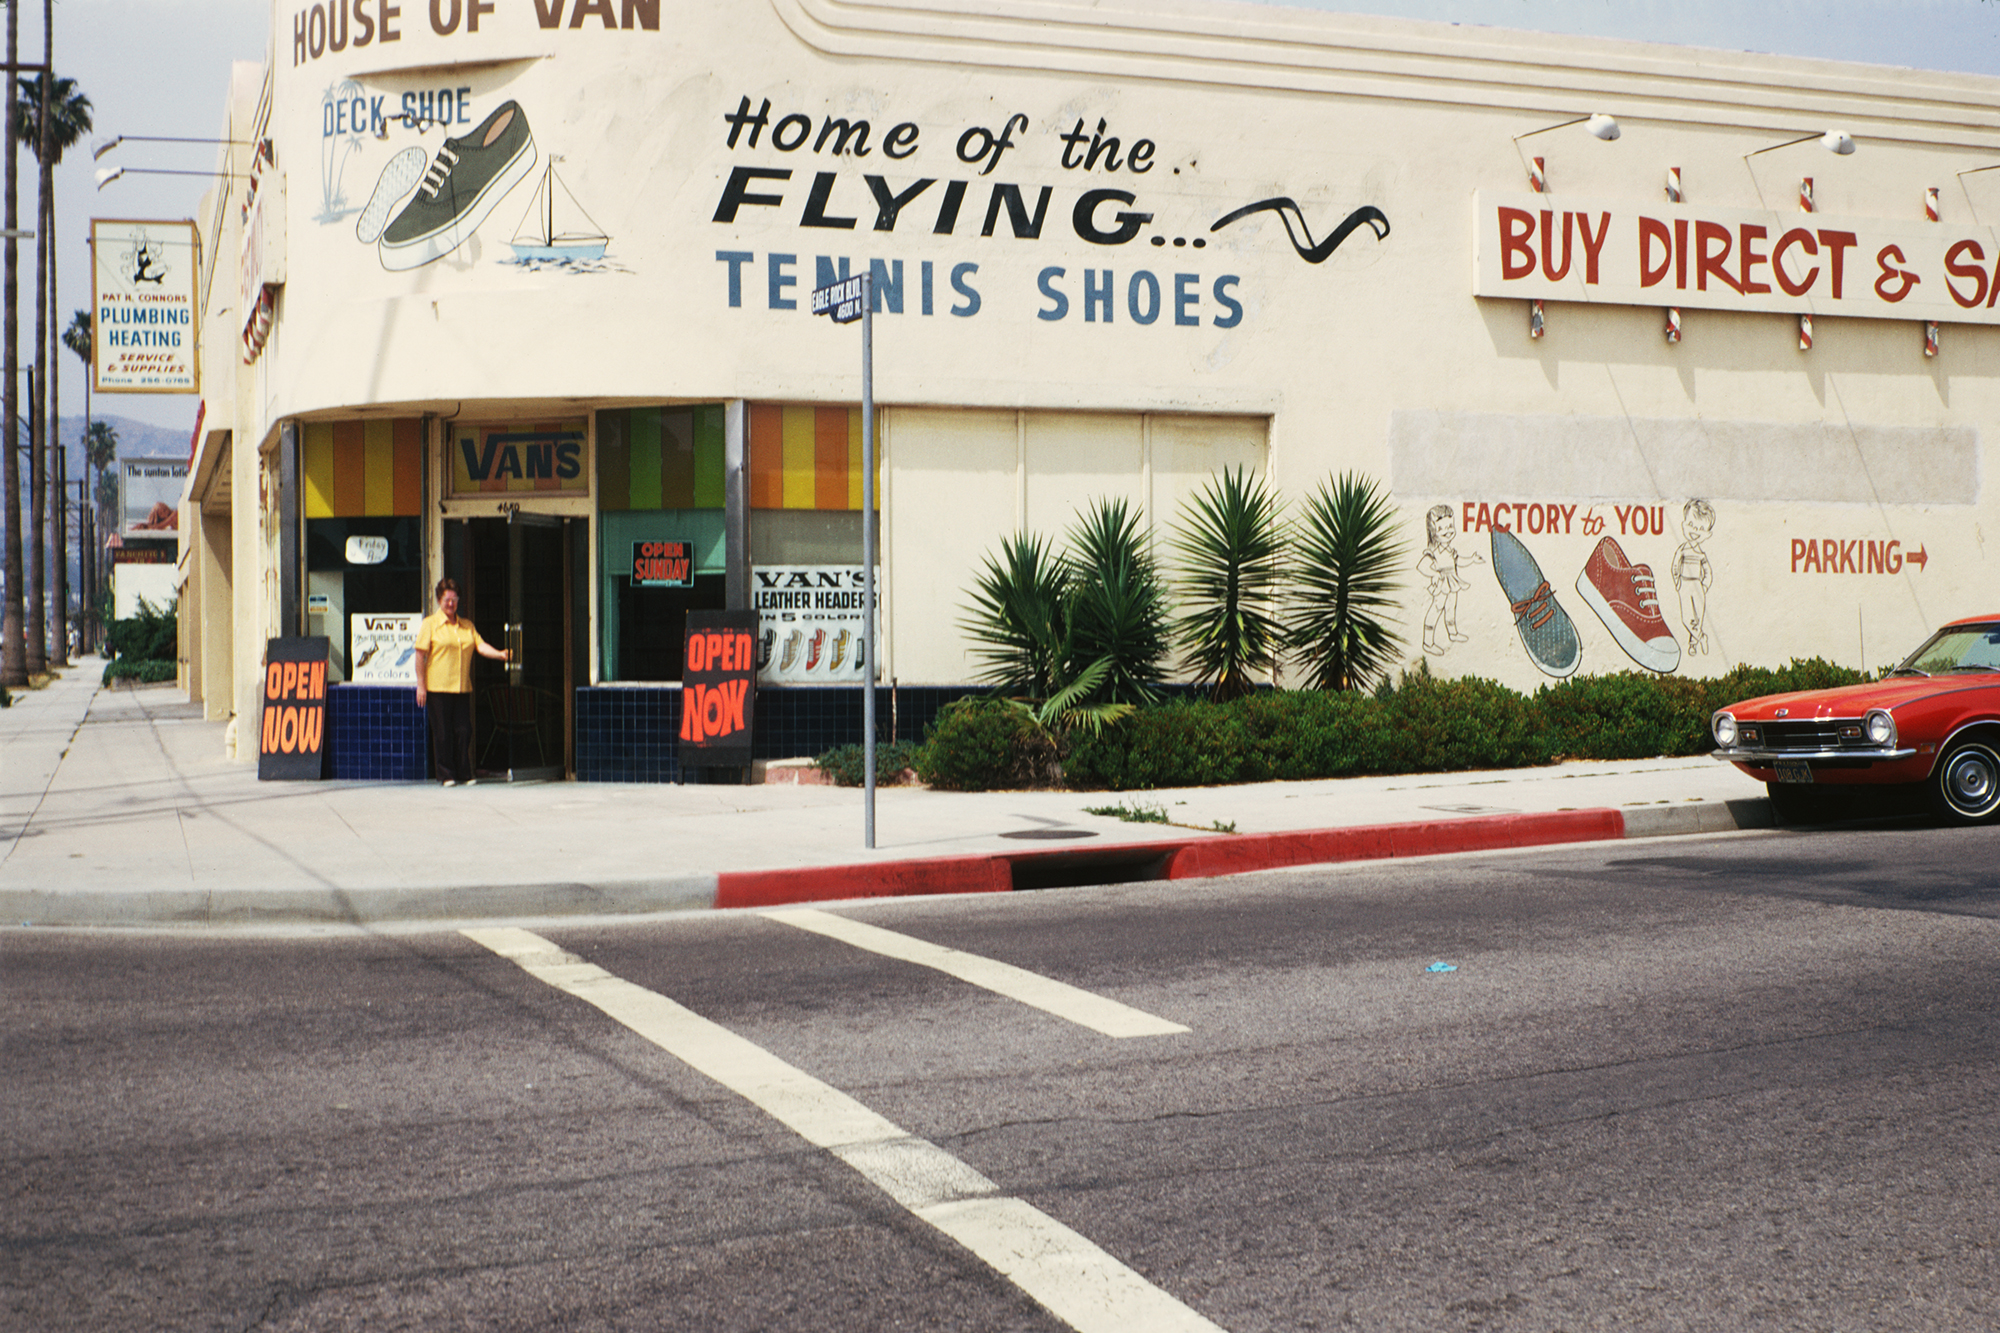 House of Vans was the first store away from the Anaheim, Calif. factory in Costa Mesa, Calif., in the early 1970s.